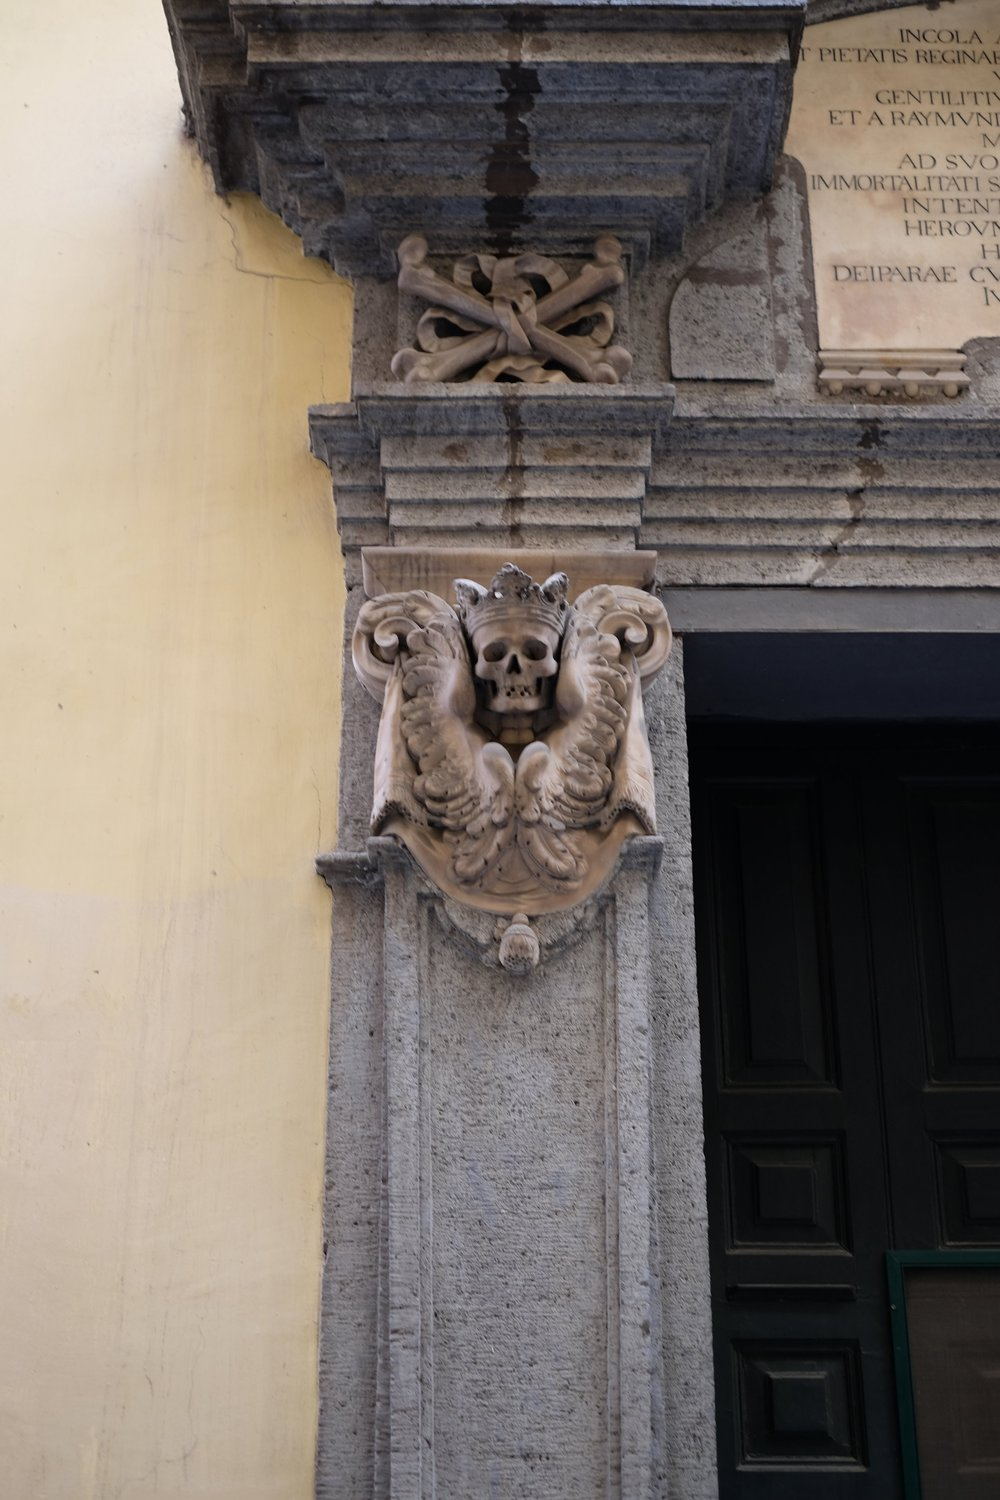 Details of the door.